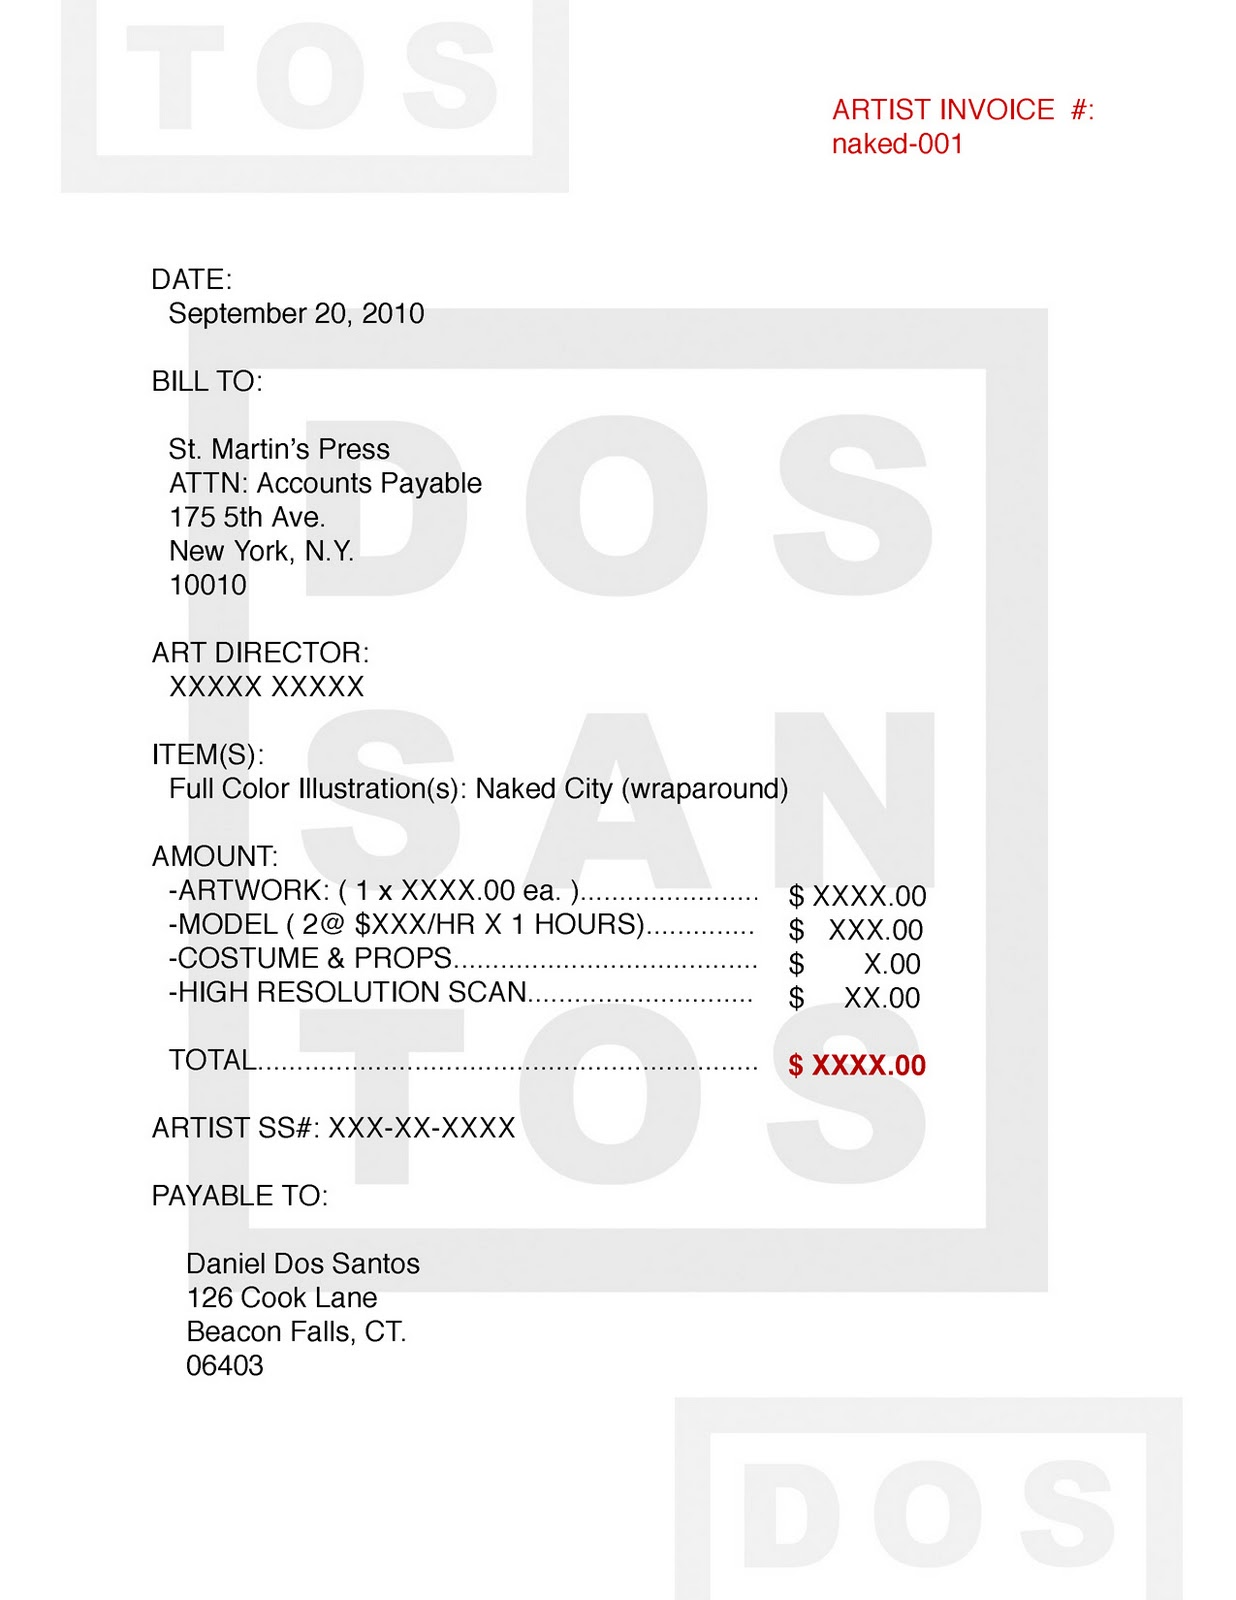 Aldiablosus  Stunning Muddy Colors Invoices With Outstanding I Believe That This Format Contains All The Pertinent Information That A Good Invoice Should Have And Can Serve As A Decent Template For Your Own With Adorable Ups Customs Invoice Also Woocommerce Print Invoice In Addition Create An Invoice Template And Invoice Amount As Well As How To Number Invoices Additionally Invoice Order From Muddycolorsblogspotcom With Aldiablosus  Outstanding Muddy Colors Invoices With Adorable I Believe That This Format Contains All The Pertinent Information That A Good Invoice Should Have And Can Serve As A Decent Template For Your Own And Stunning Ups Customs Invoice Also Woocommerce Print Invoice In Addition Create An Invoice Template From Muddycolorsblogspotcom